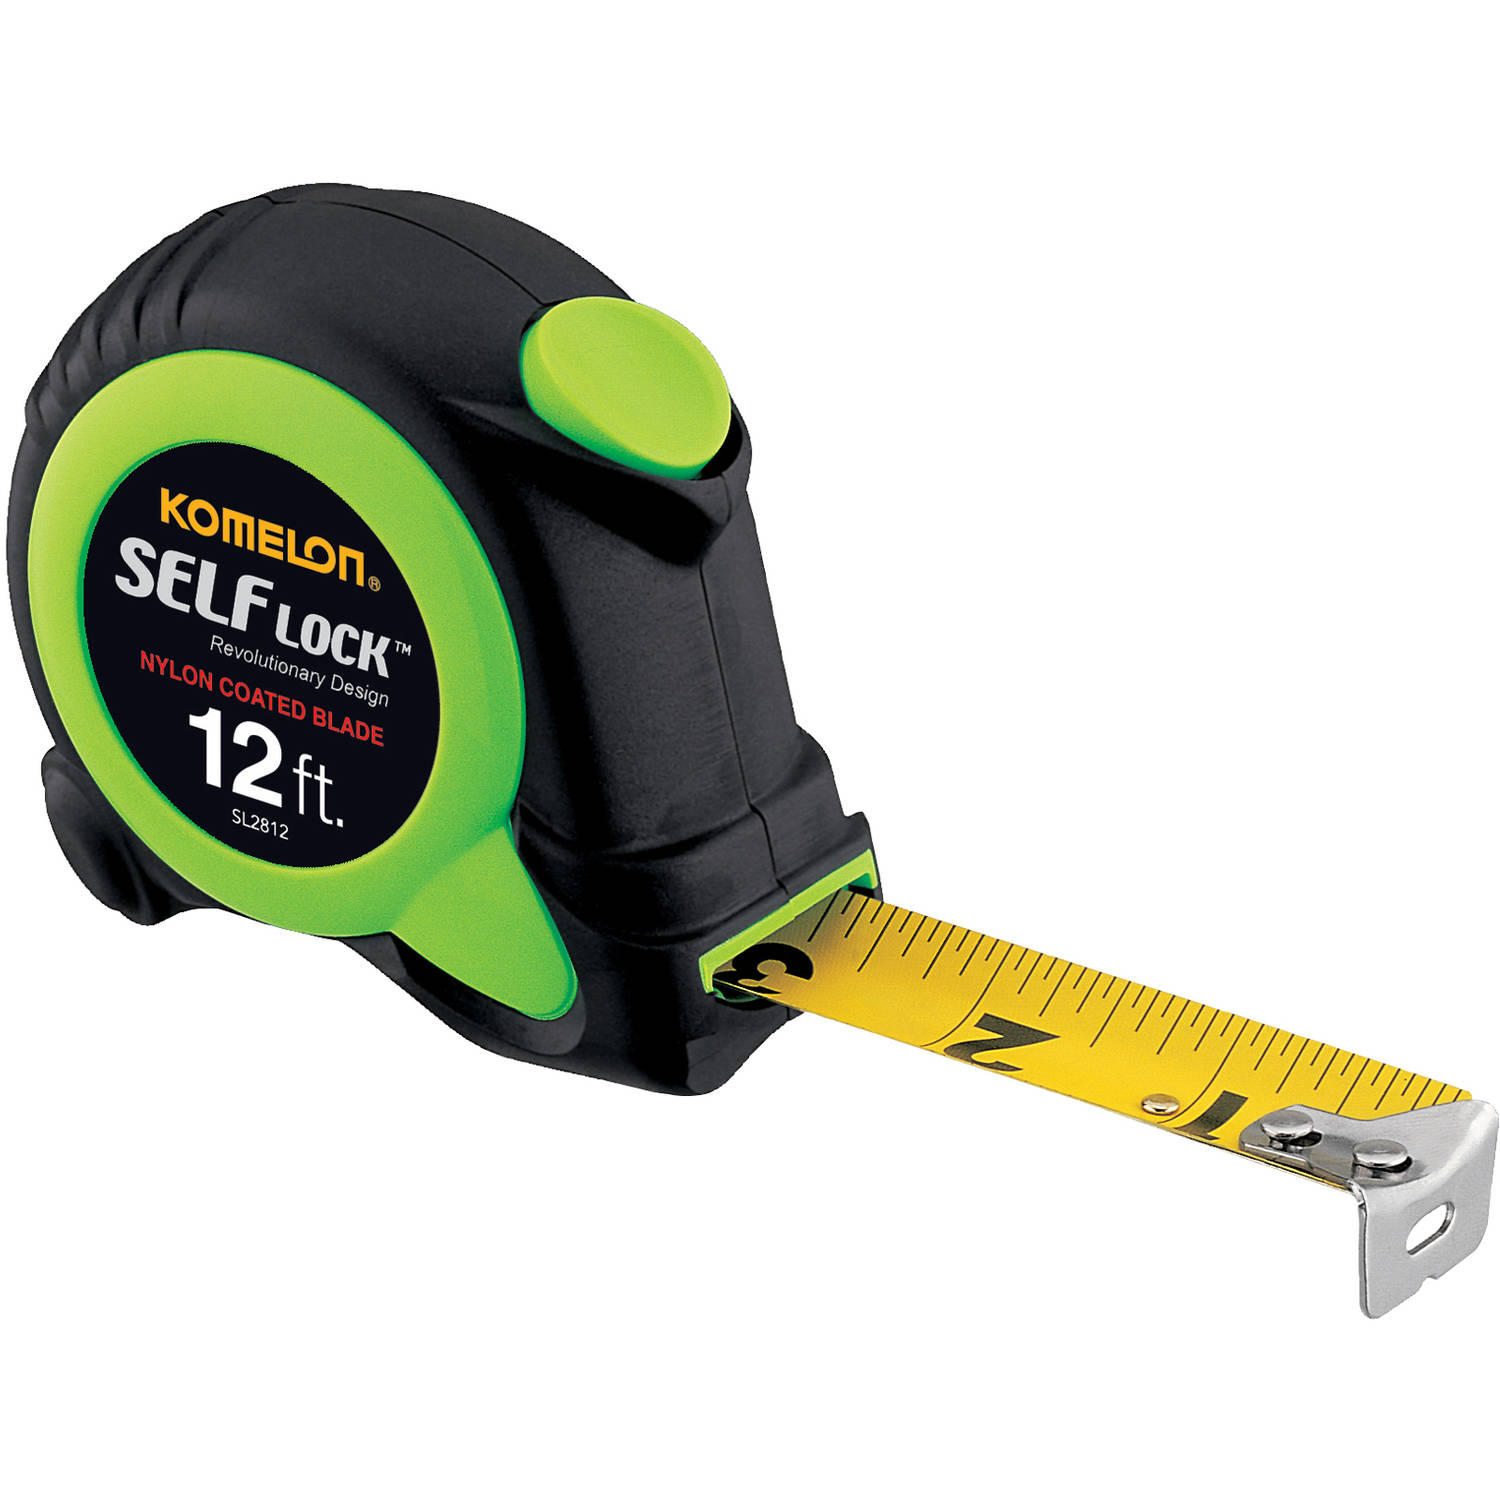 Komelon 12' Self-Lock Tape Measure